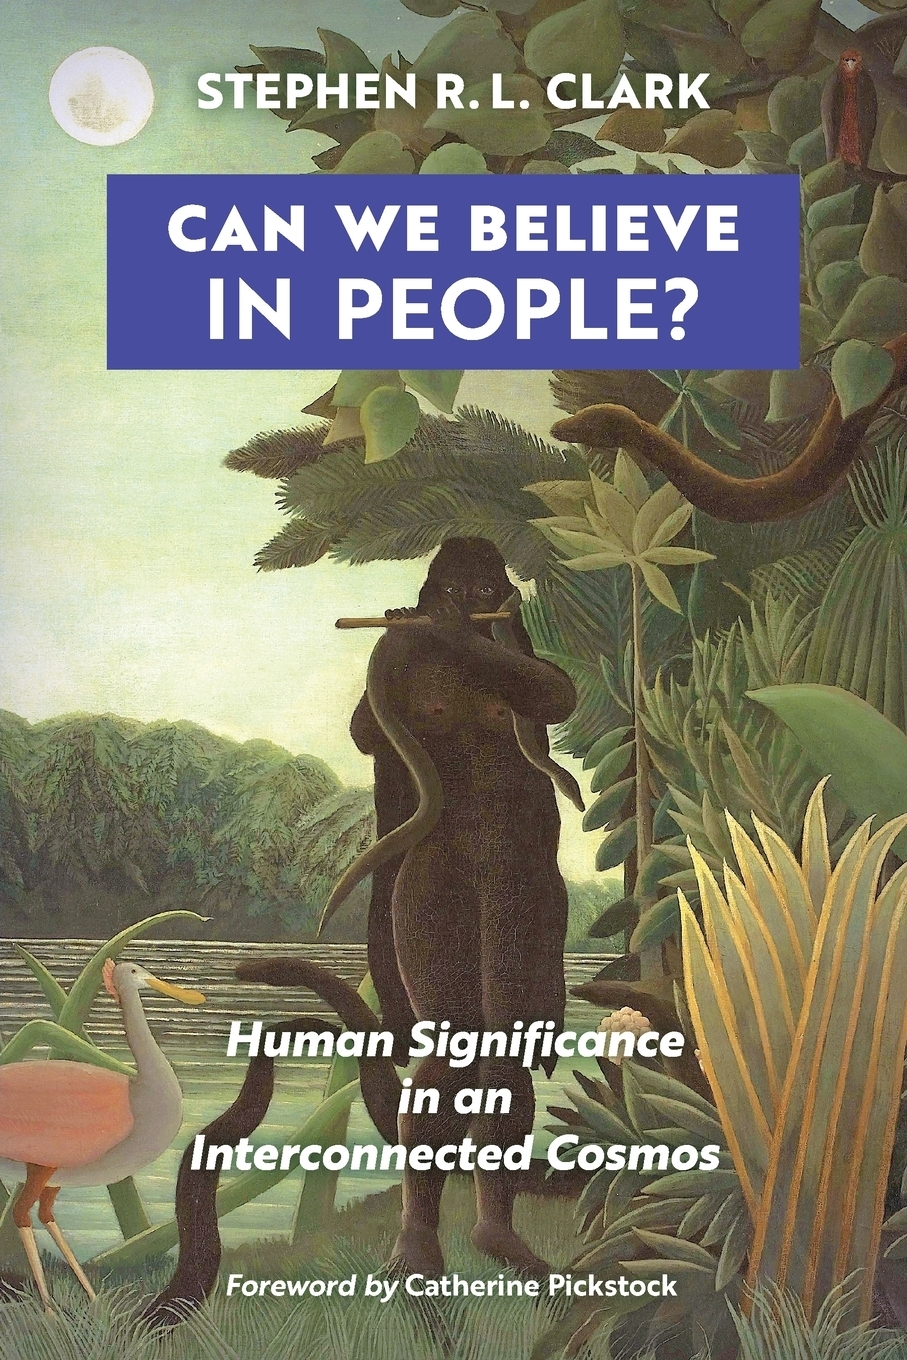 Stephen R. L. Clark. Can We Believe in People?. Human Significance in an Interconnected Cosmos